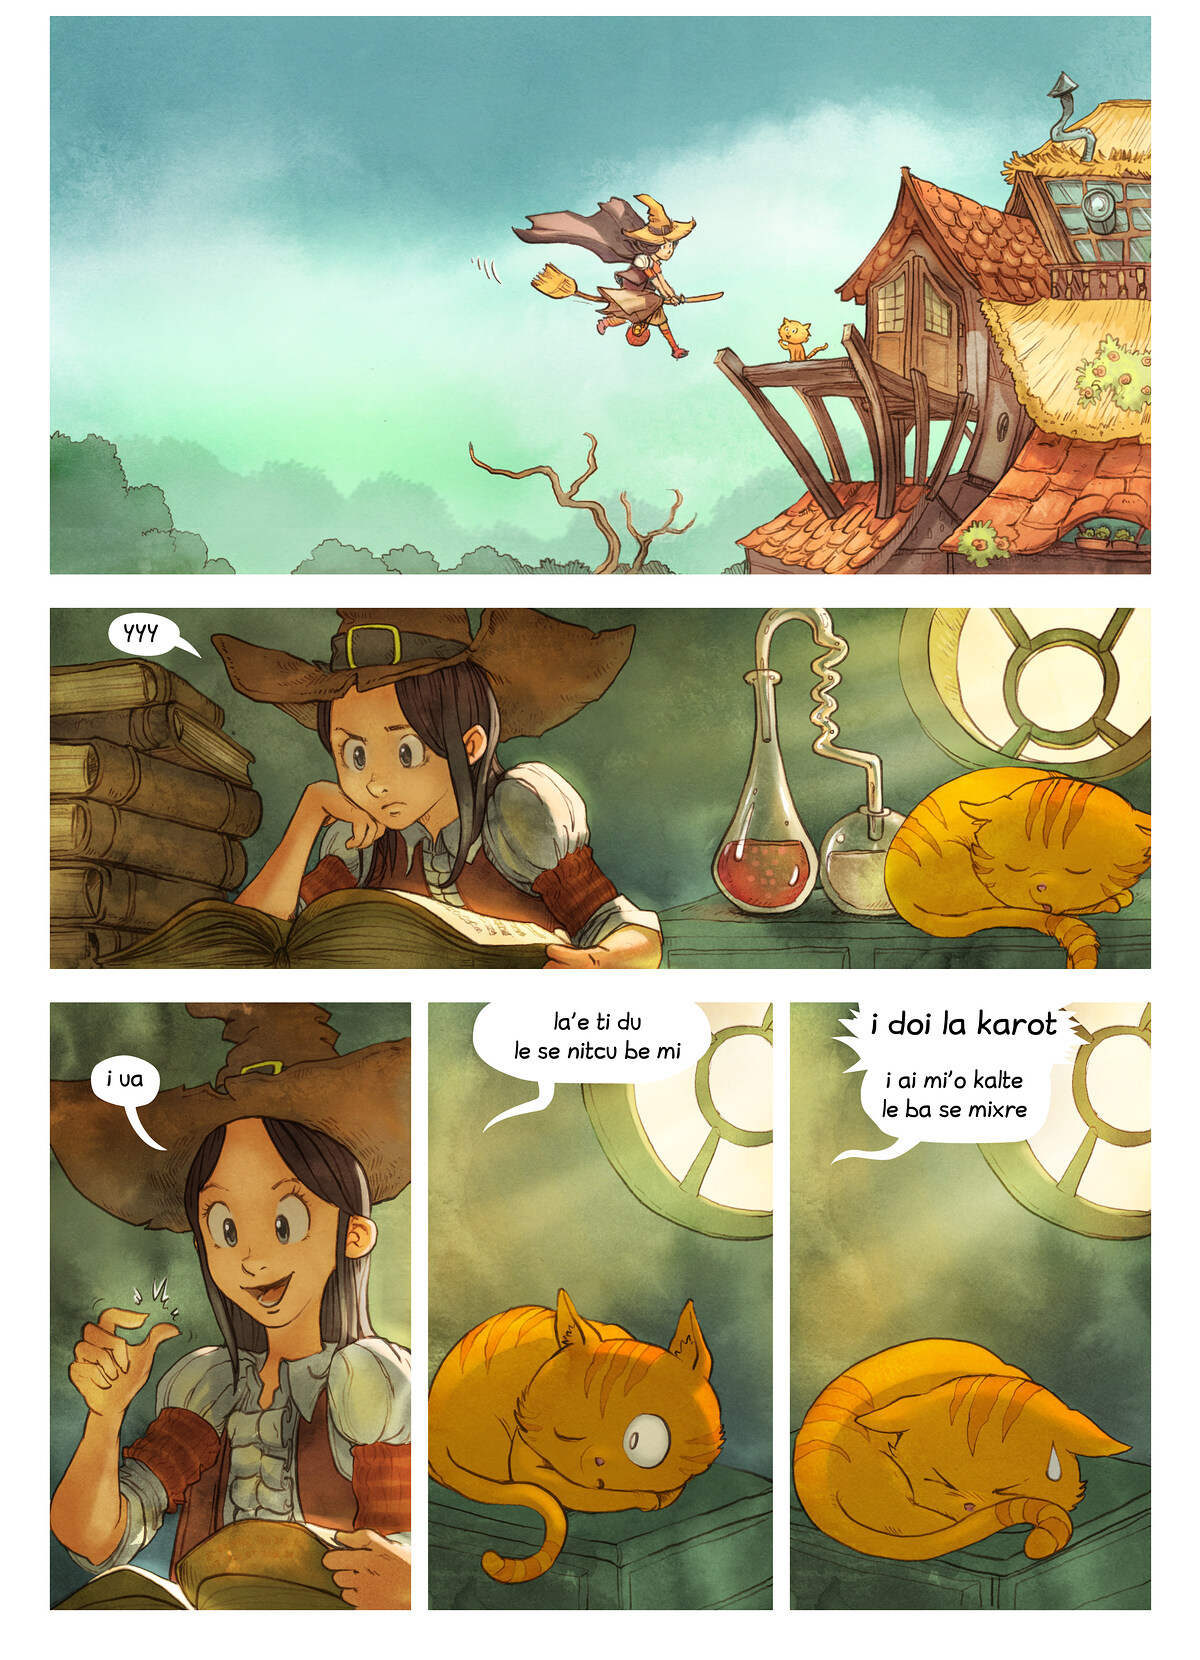 A webcomic page of Pepper&Carrot, pagbu 3 [jb], papri 4